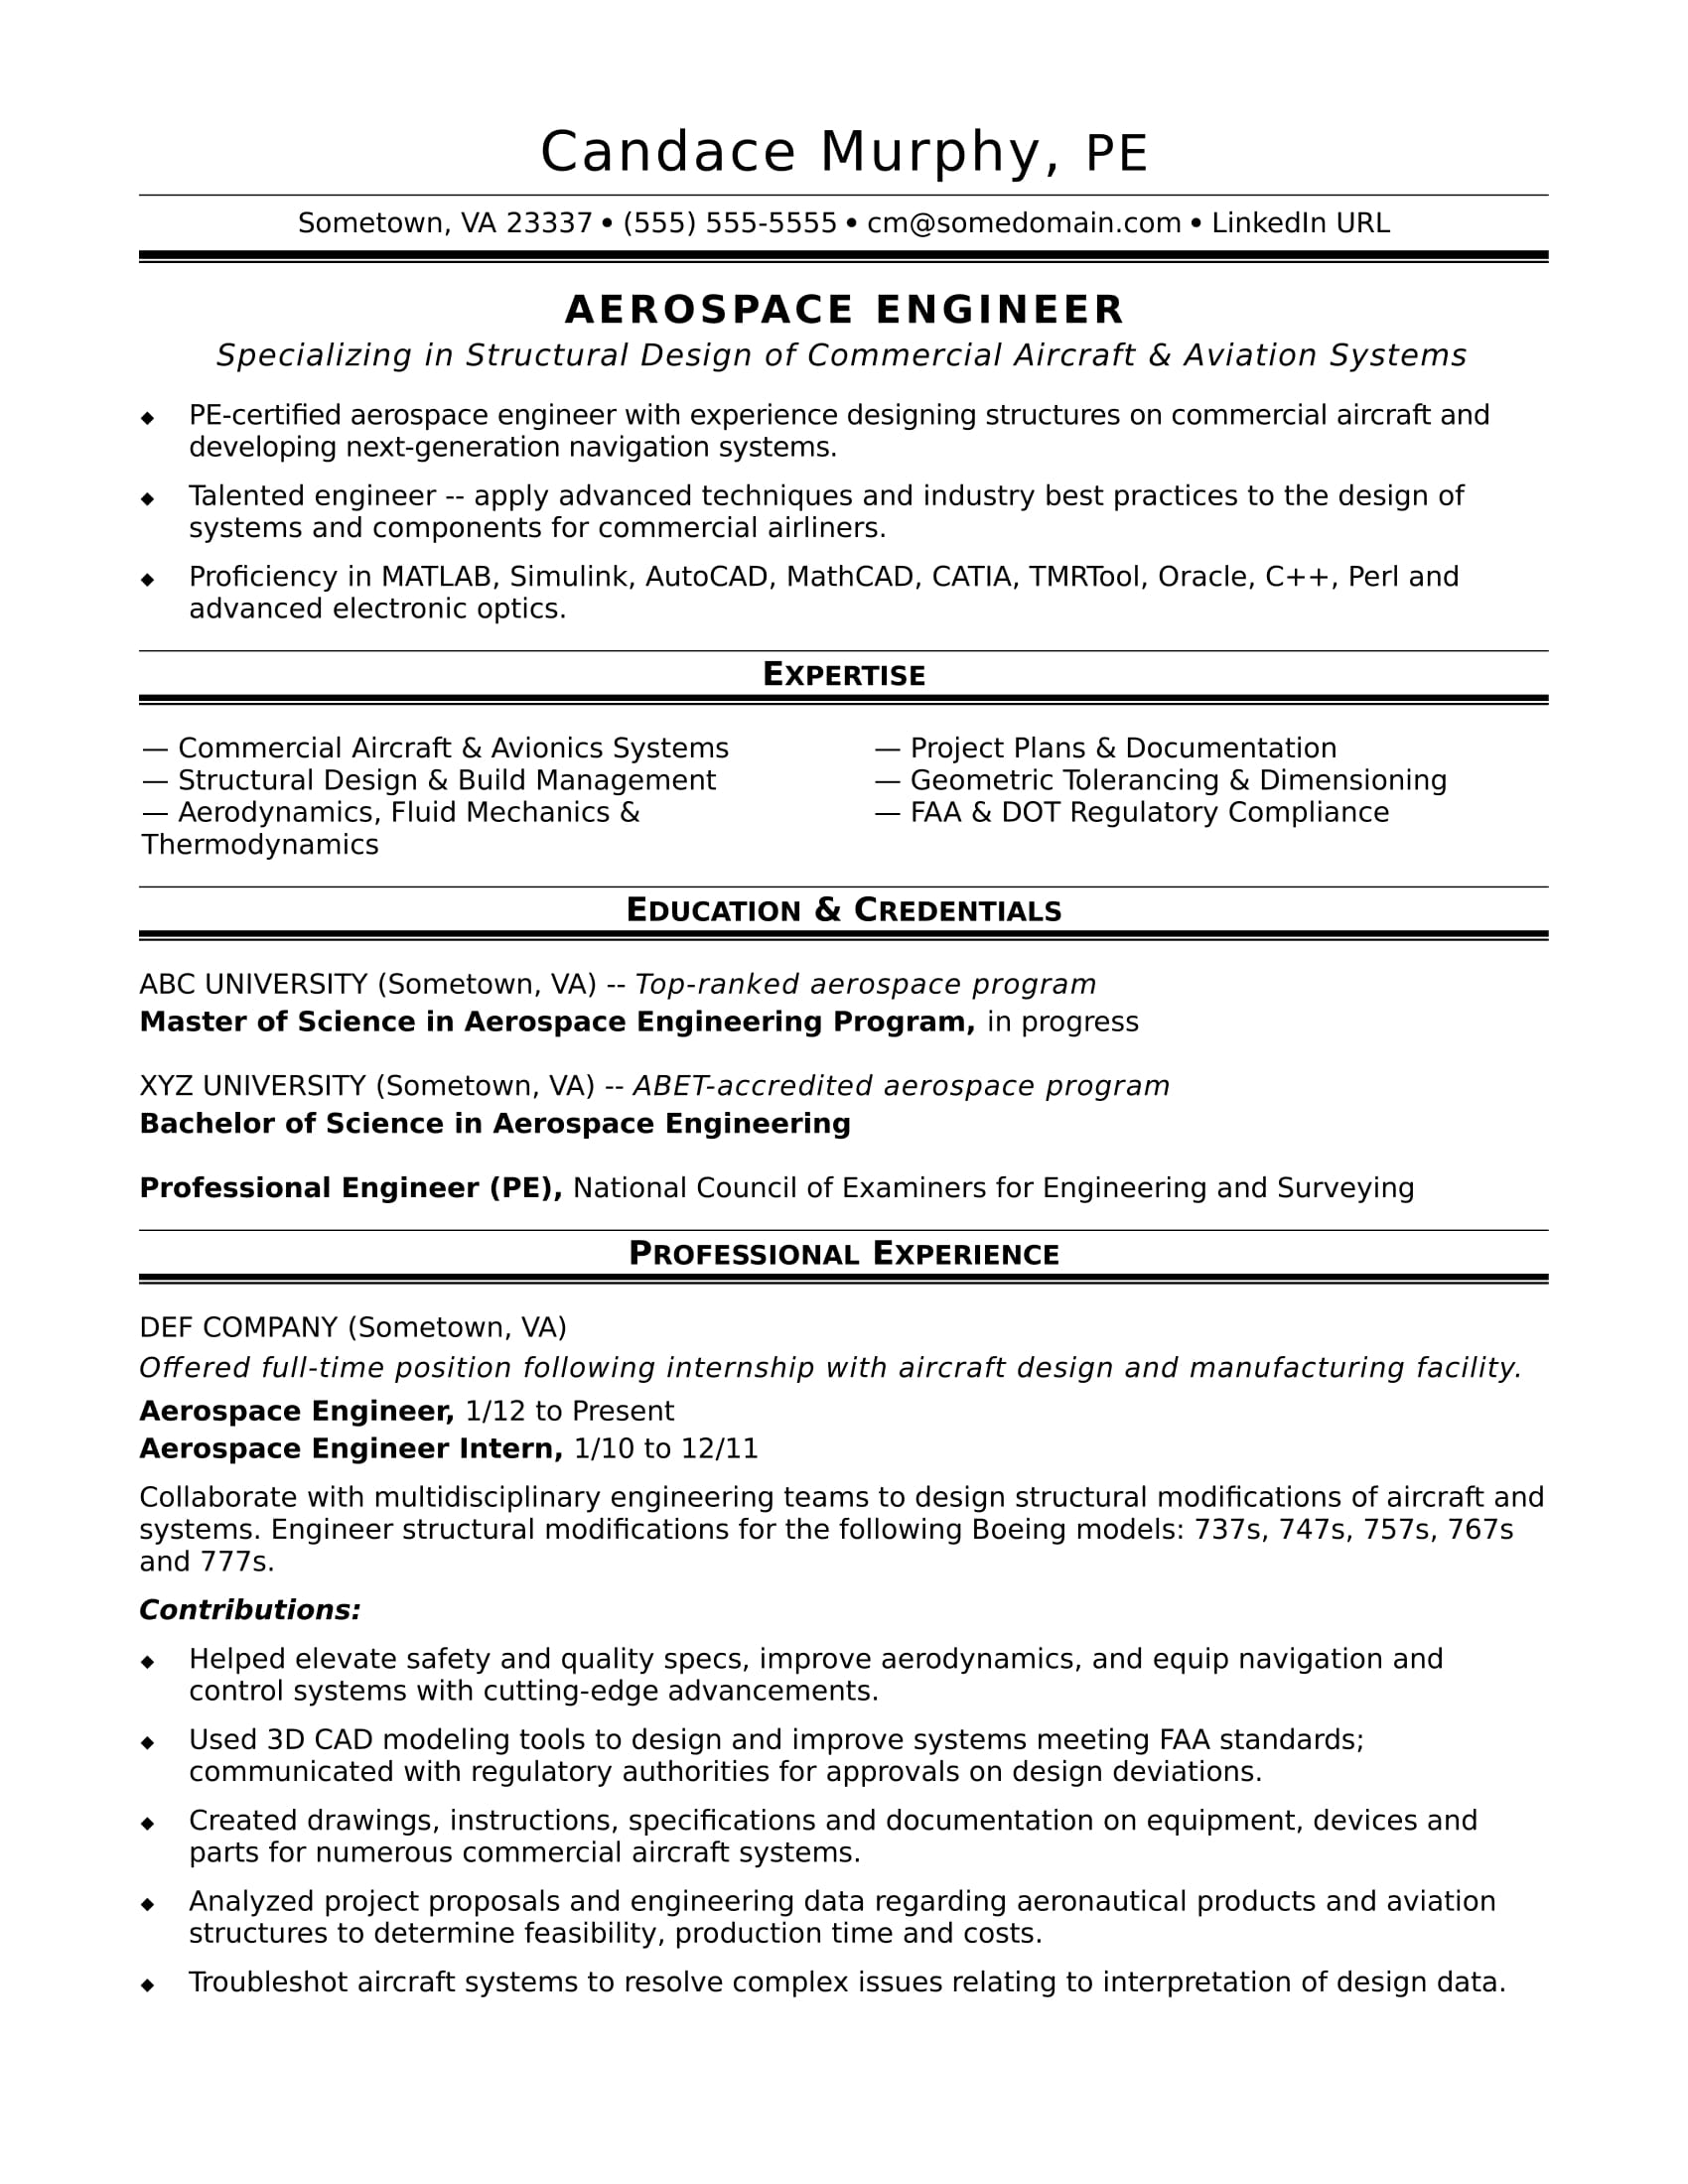 sample resume for a midlevel aerospace engineer | monster